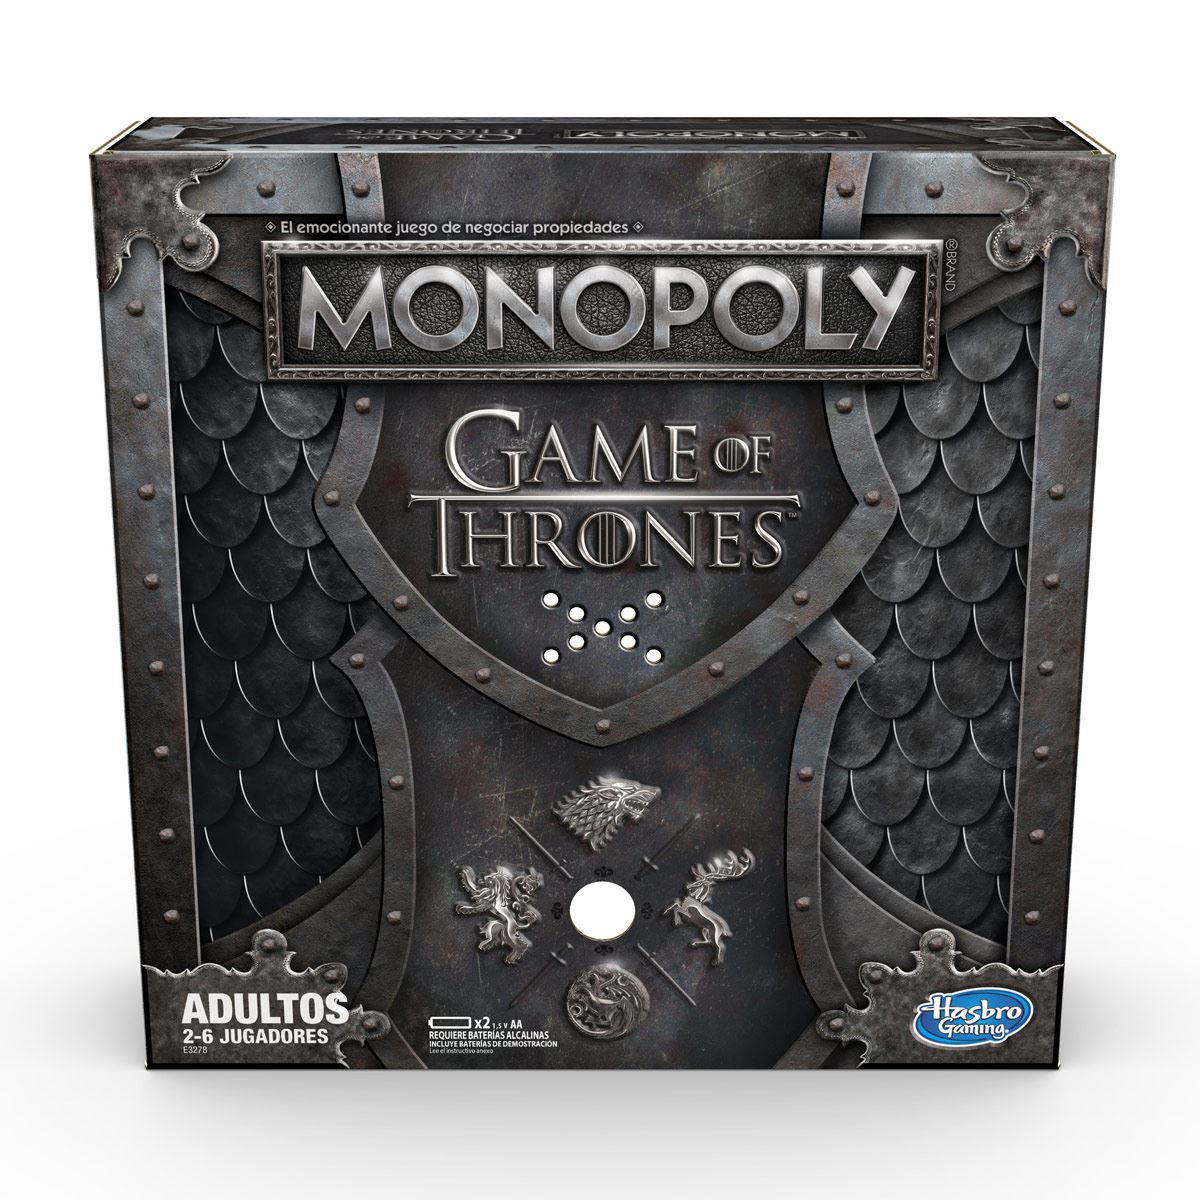 Monopoly Game of Thrones Hasbro Gaming